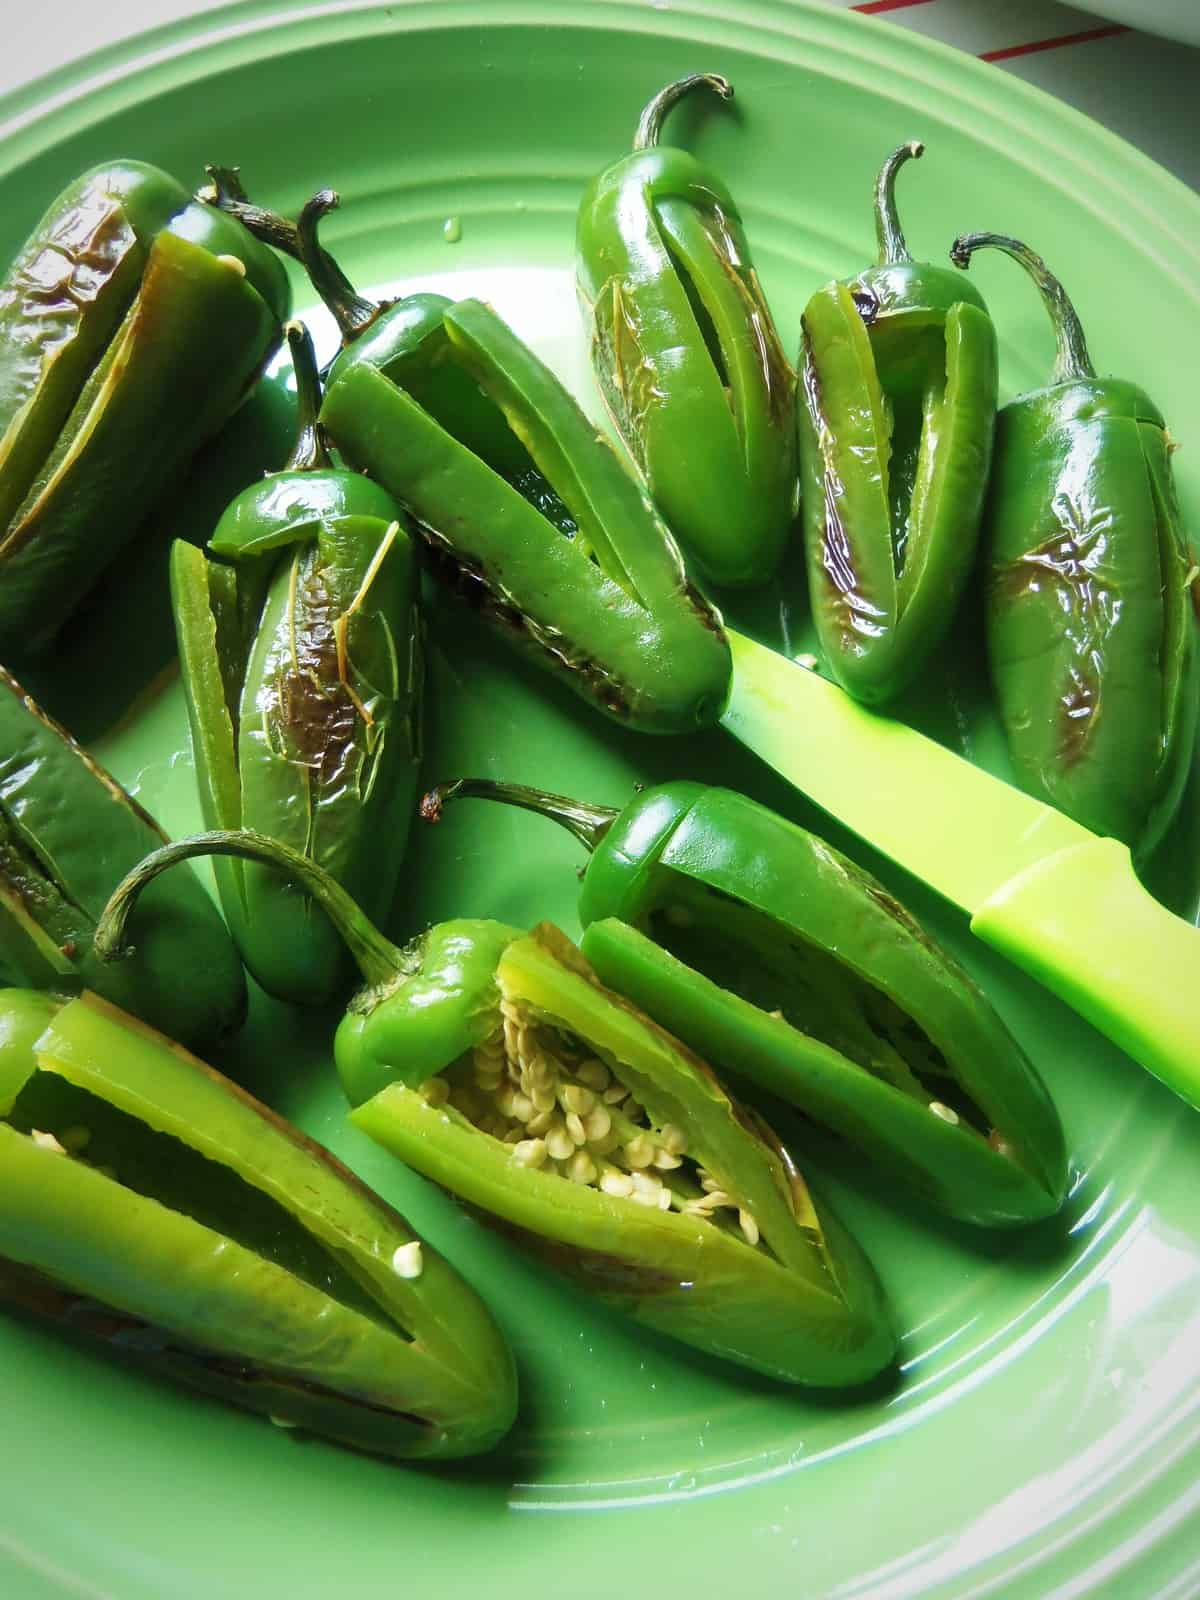 Partially roasted jalapeños work well for poppers with a batter or breading. The flour adheres much better than on a raw pepper.